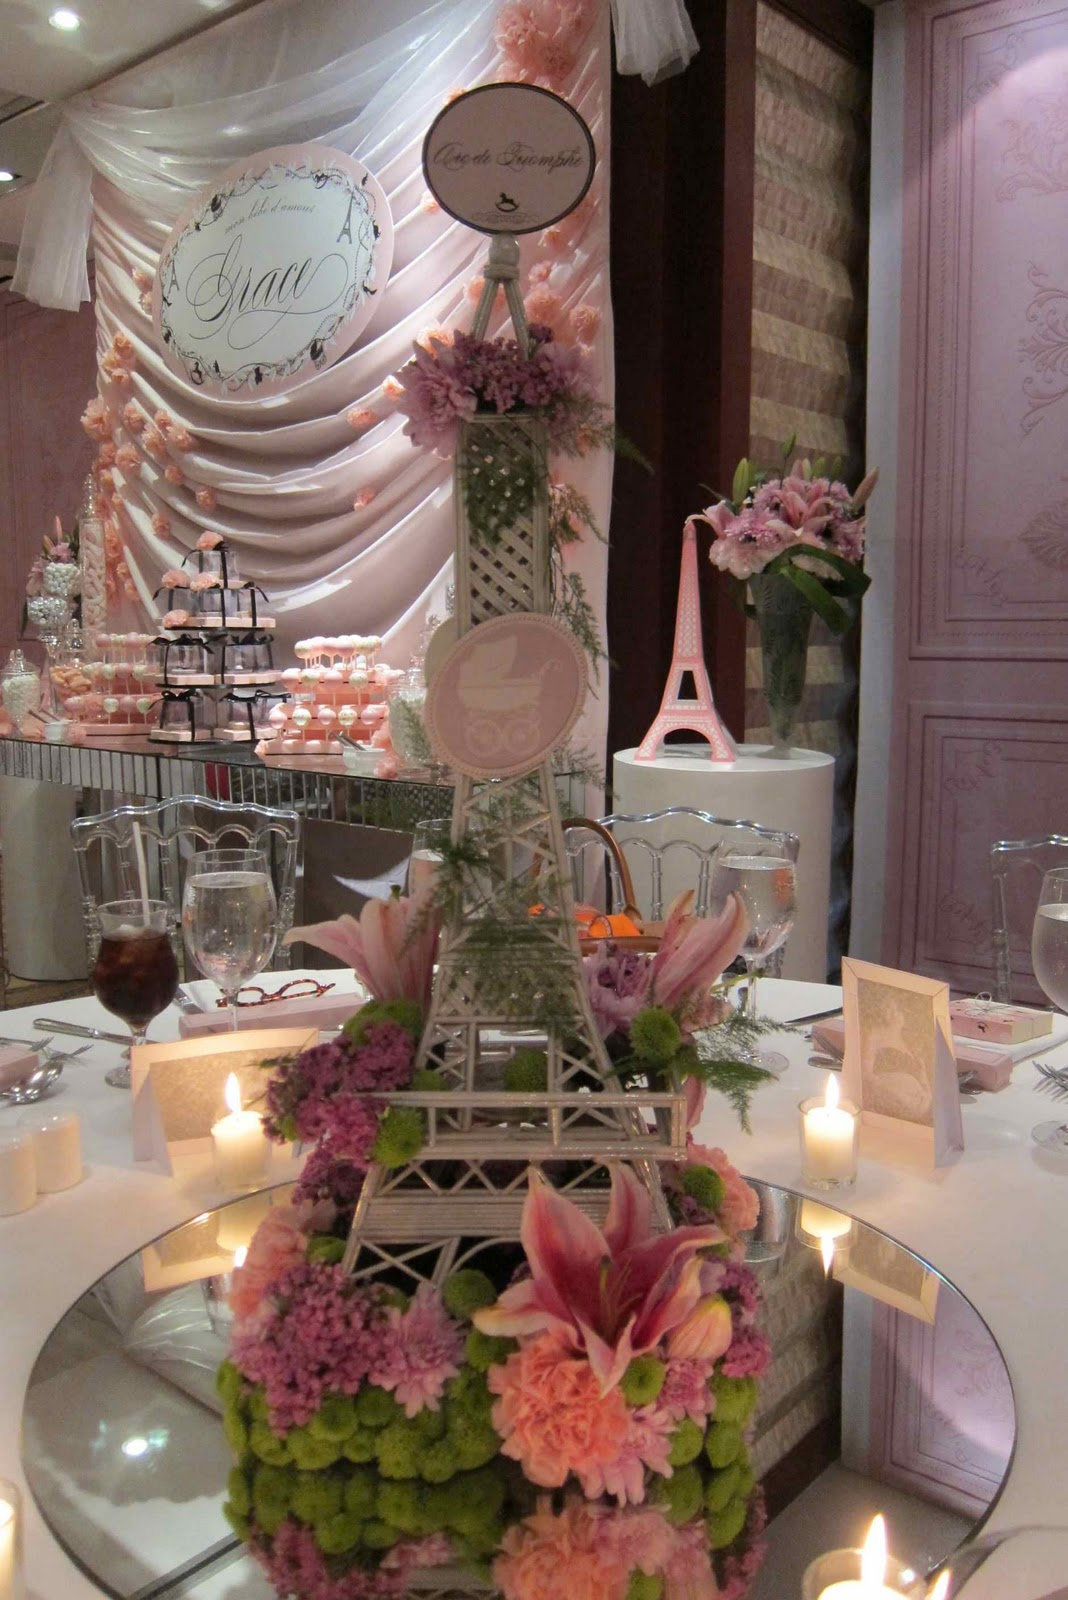 Eiffel Tower Centerpieces | Eiffel Tower Figurines Wholesale | Eiffel Tower Table Centerpieces